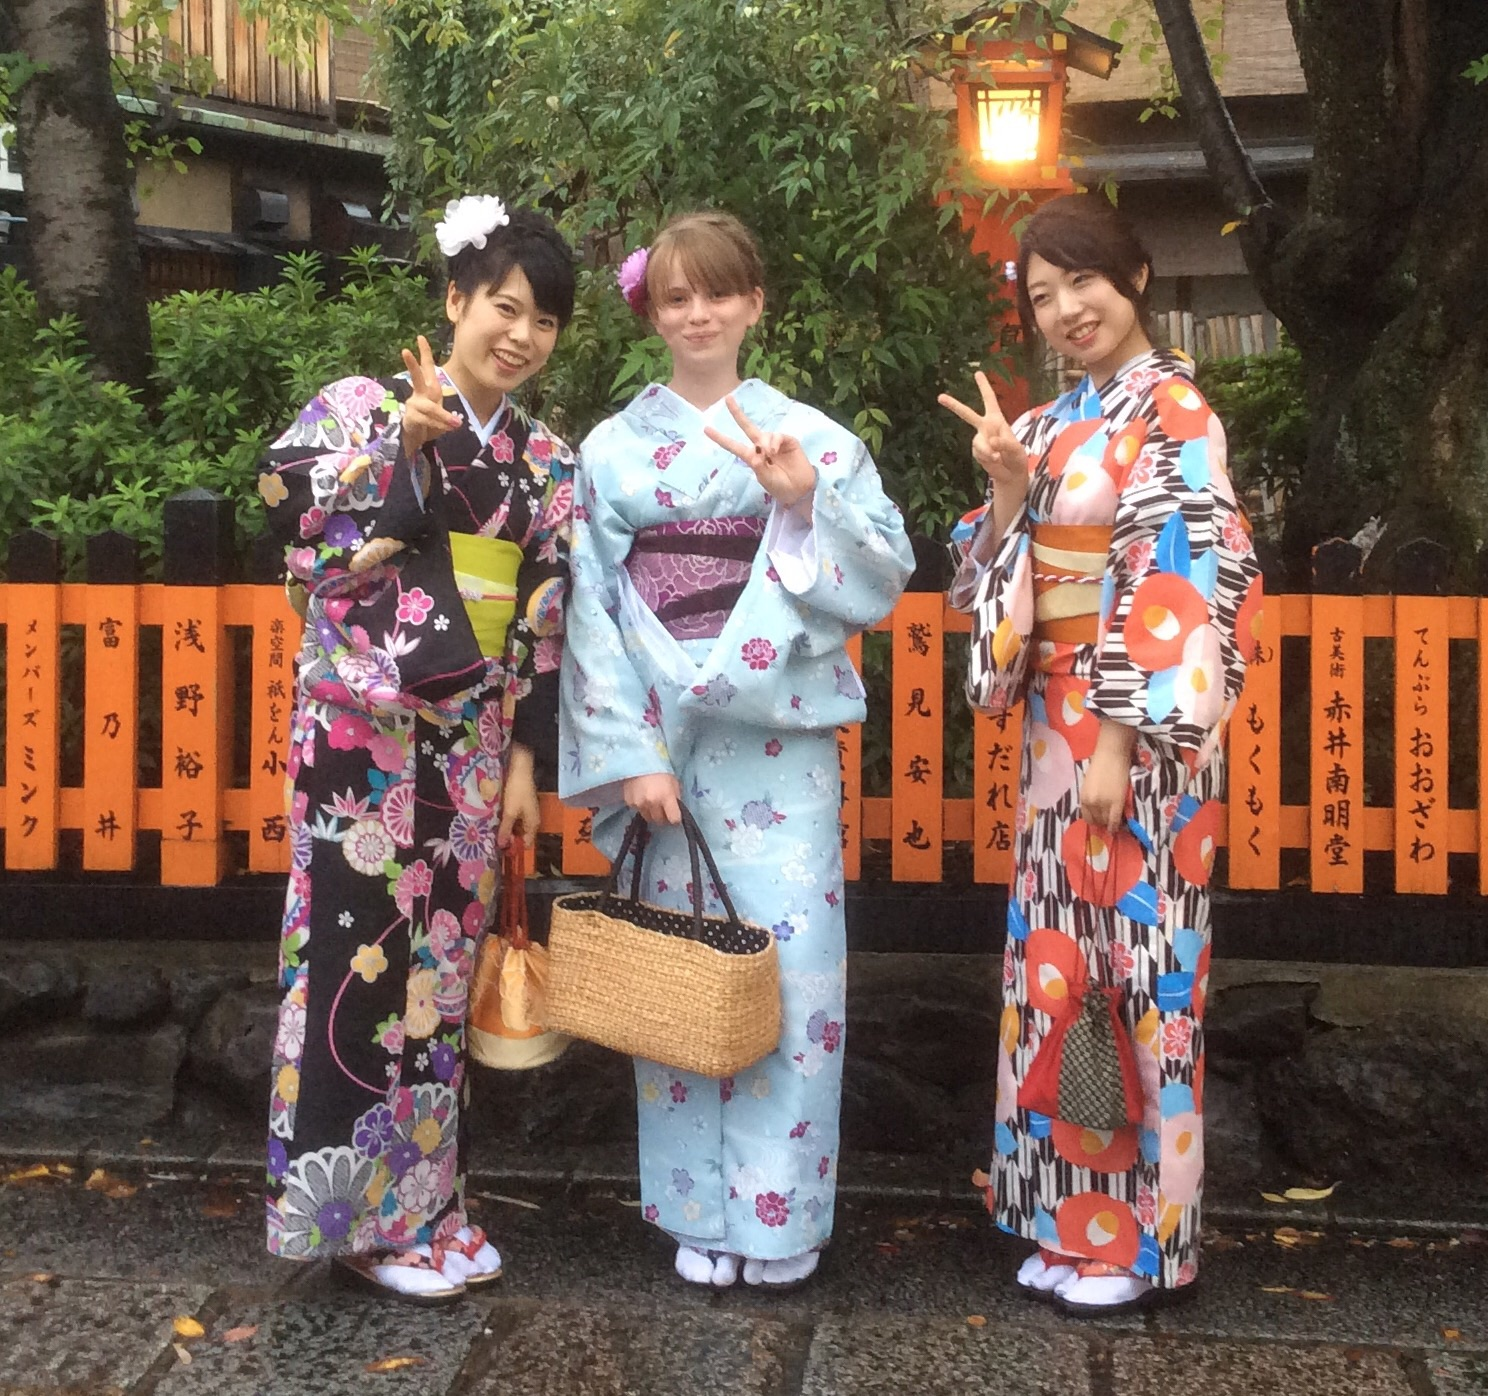 I met lots of other people in kimonos.